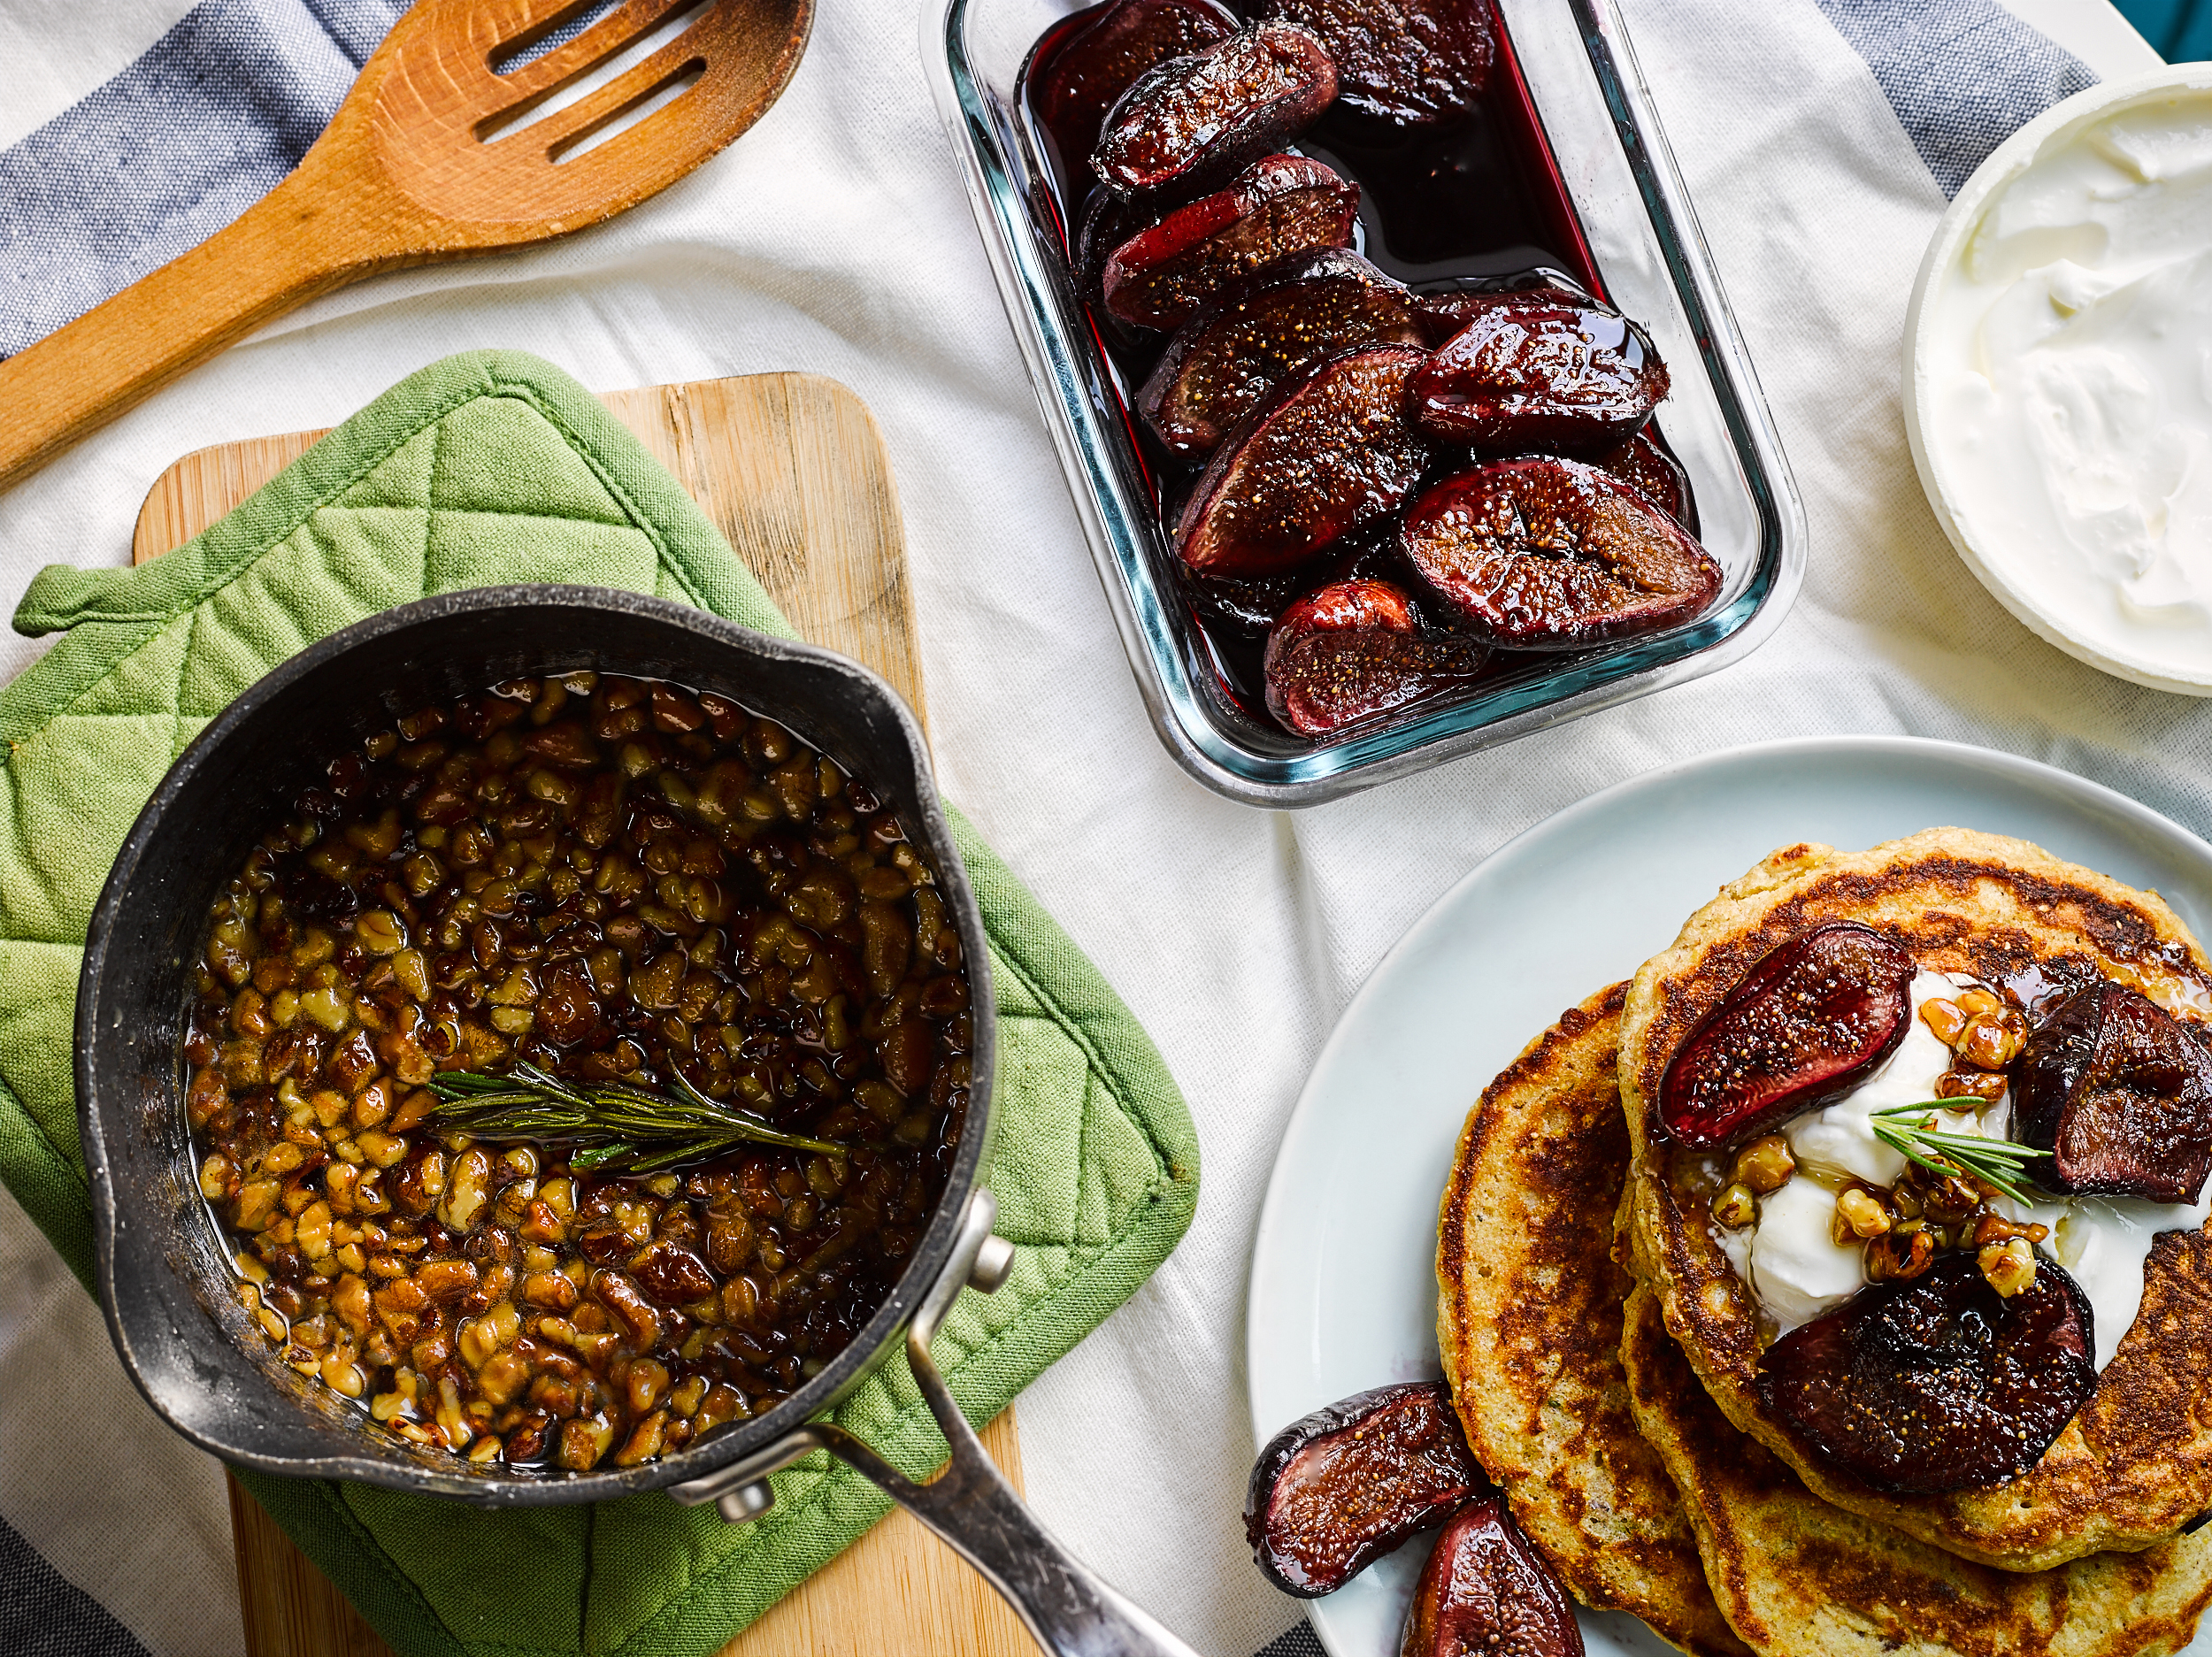 Rosemary Cornmeal Pancakes with Red Wine Figs - Traveling Fork